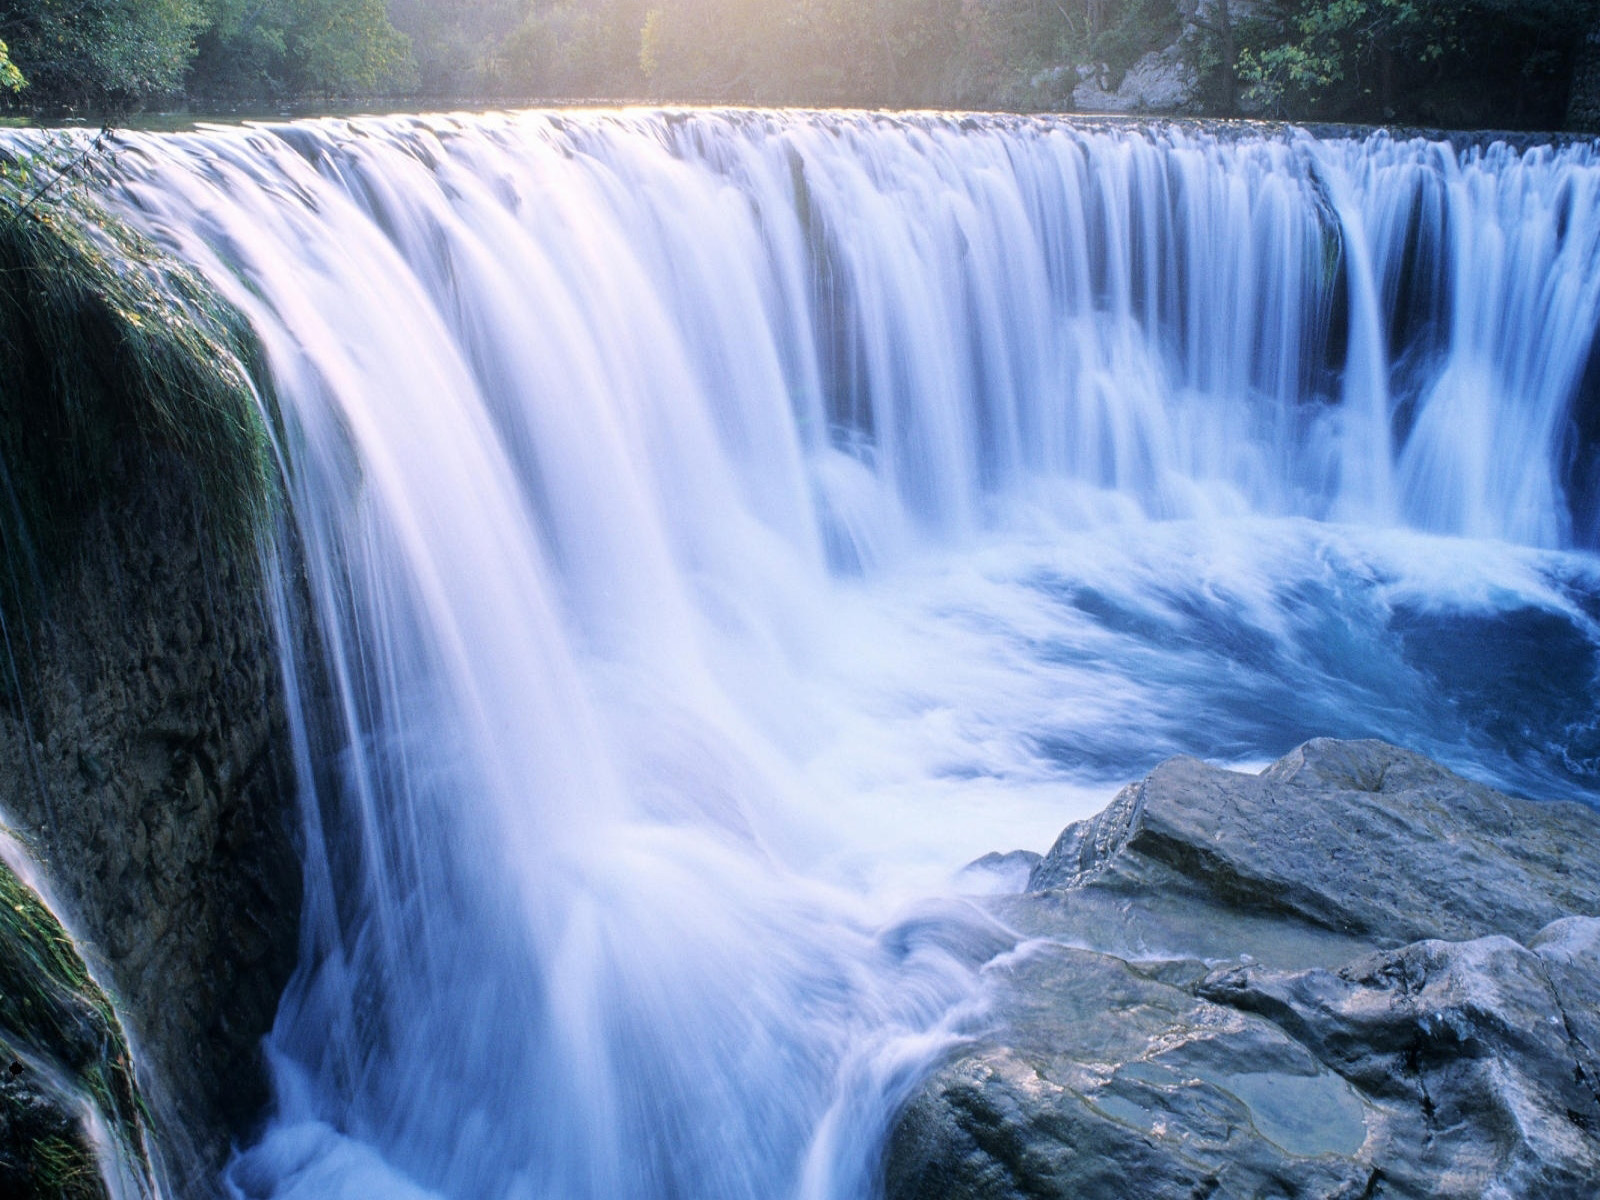 Animated Waterfall Wallpapers For Mobile Blue Waterfall Wallpapers Blue Waterfall Stock Photos